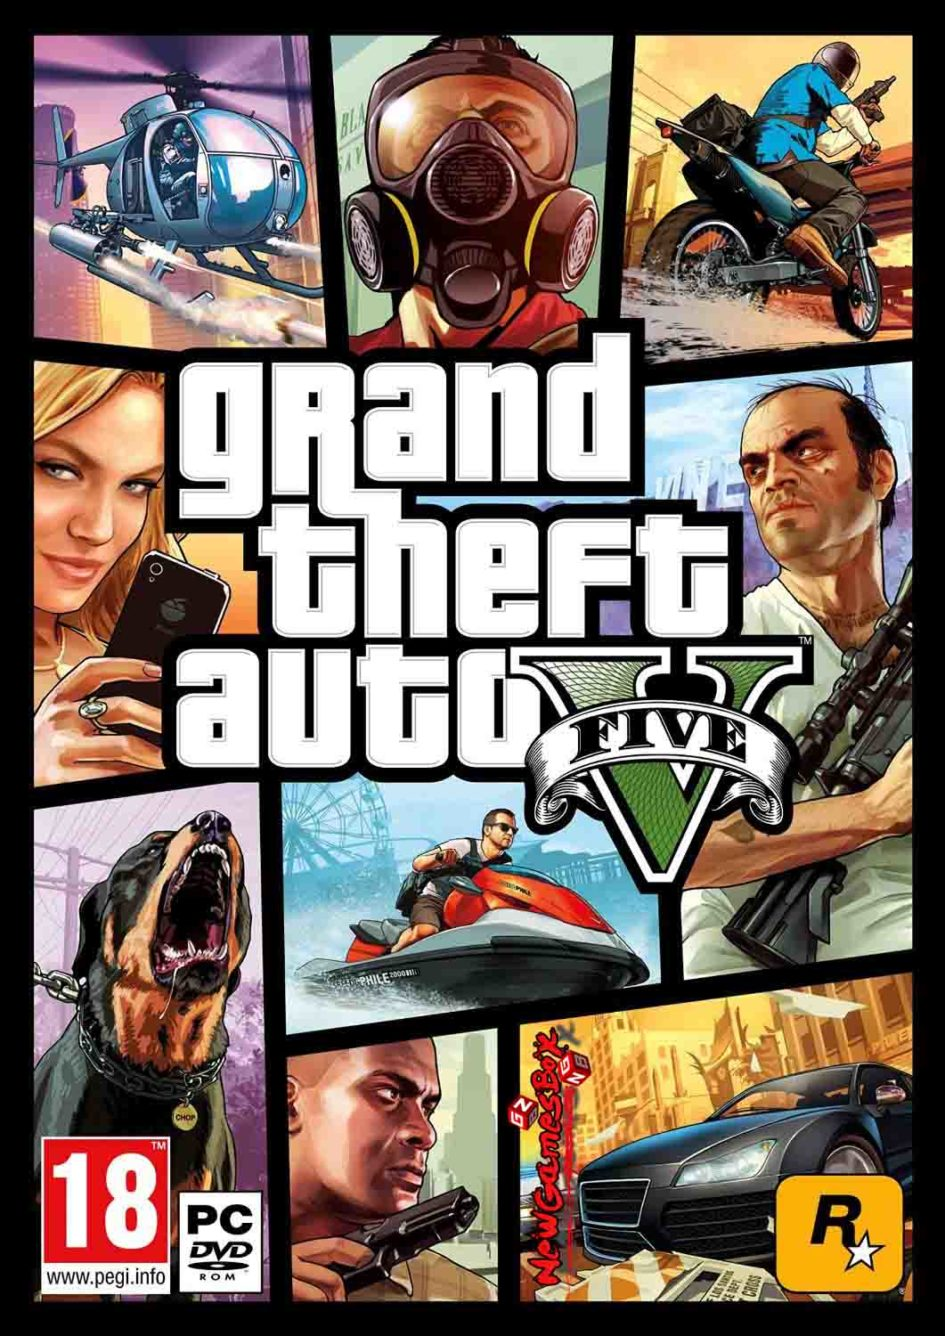 Gta 5 pc free download game full version.